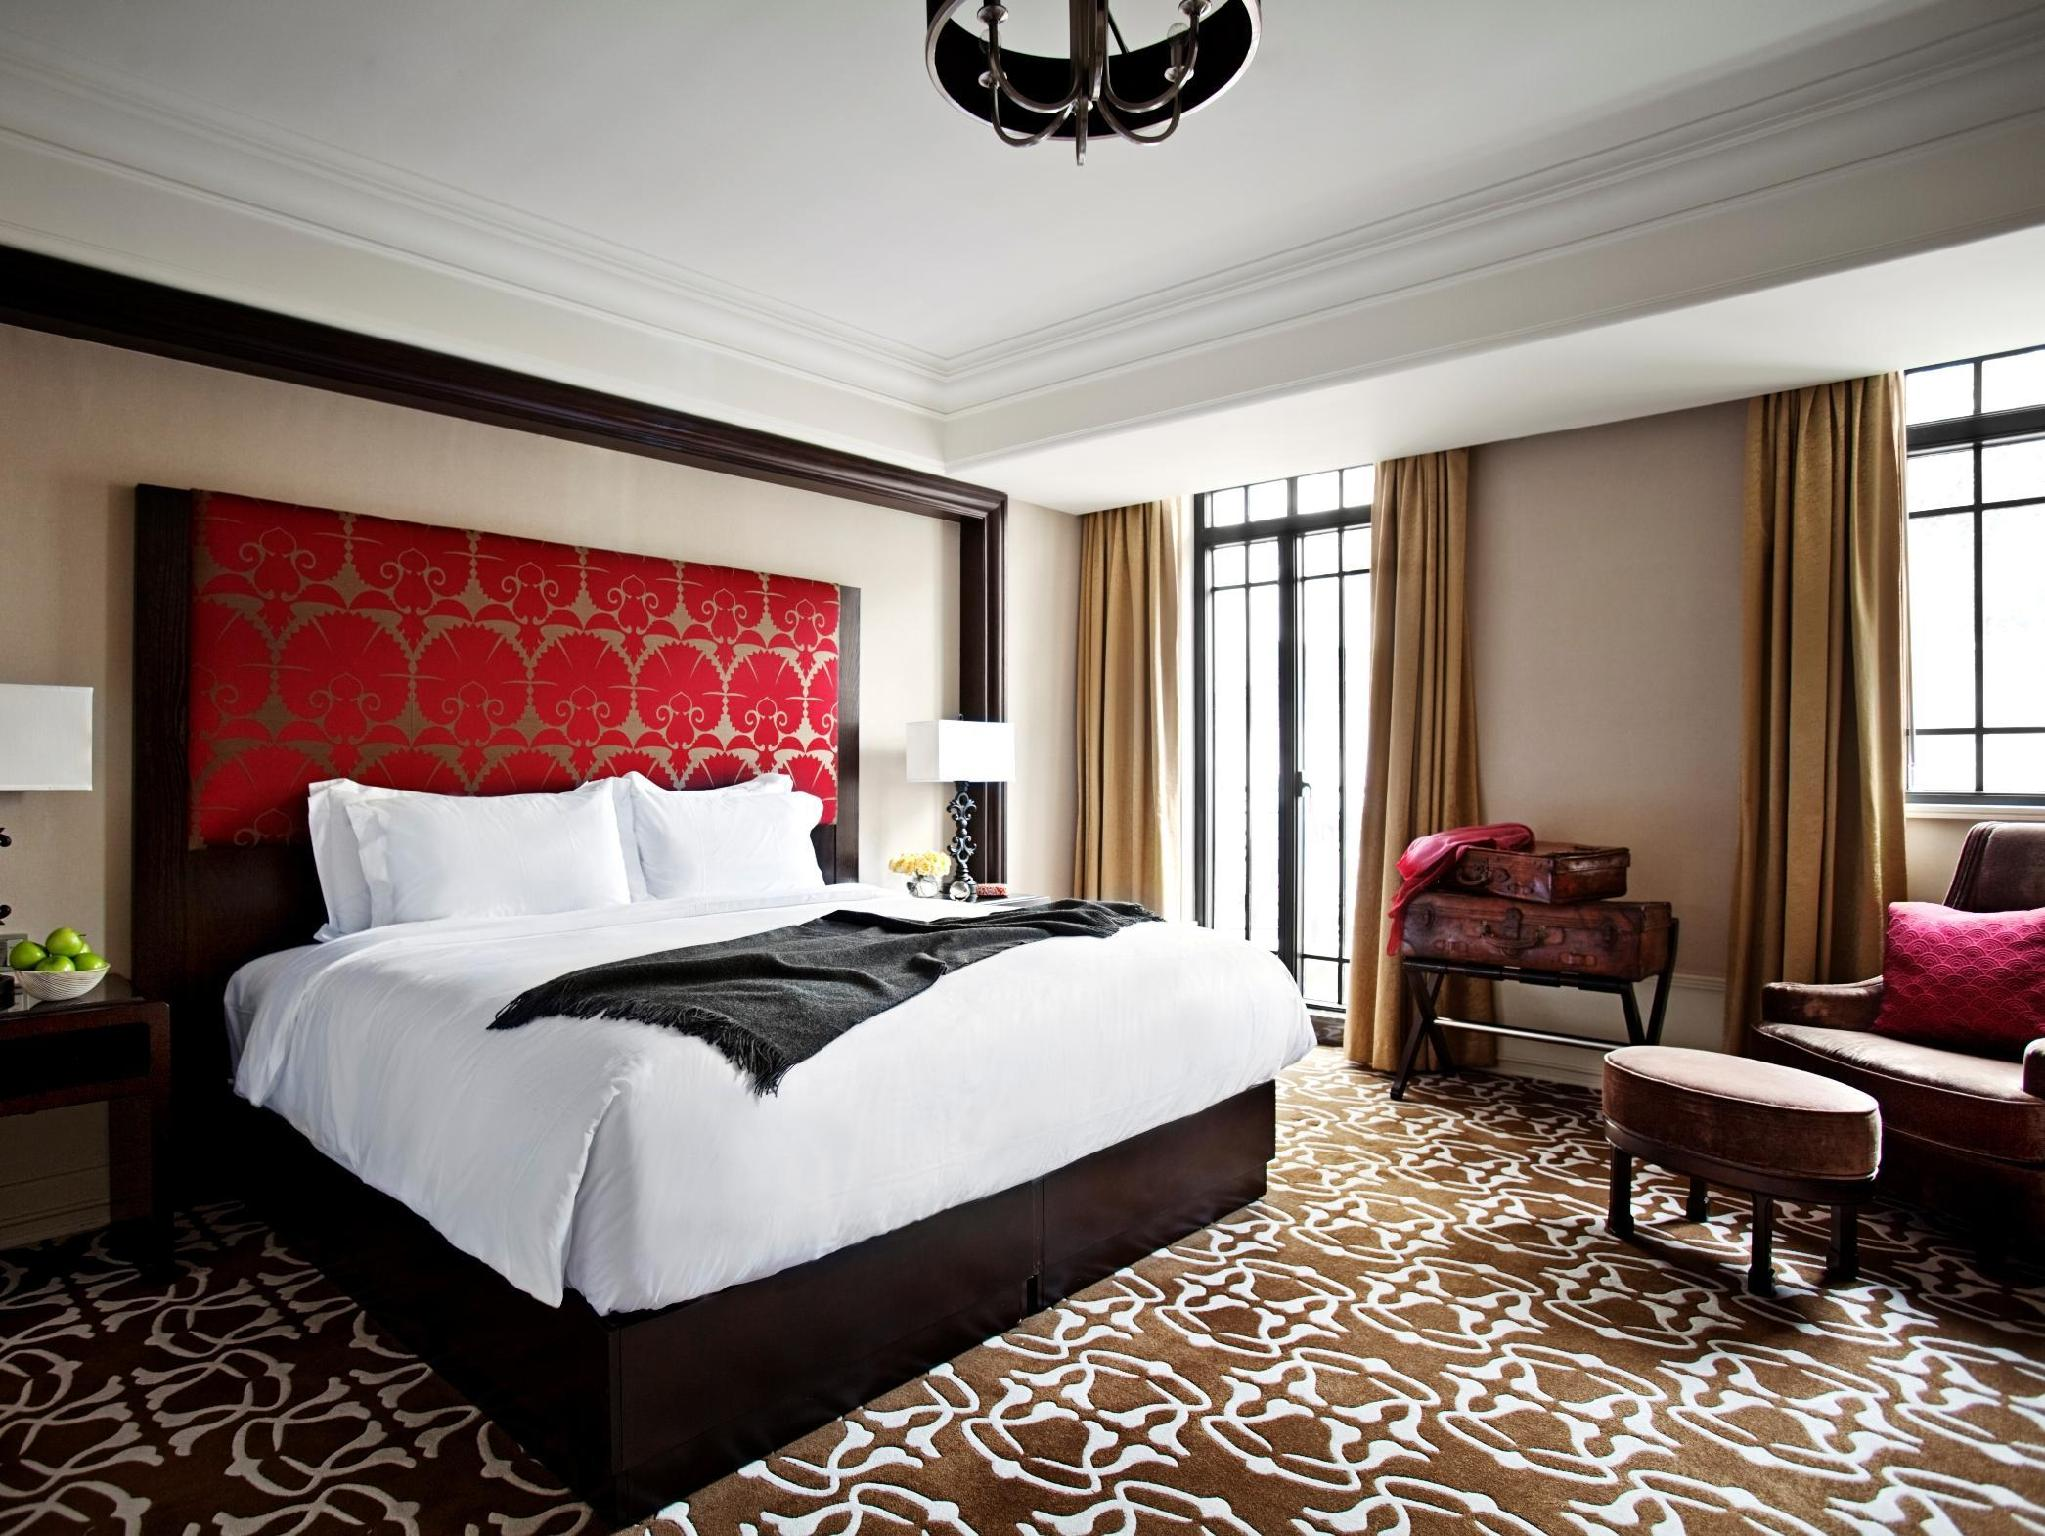 Paket Keluarga - Kamar Shanghai Grand Double atau Twin (Family Package - Shanghai Grand Double or Twin Room)